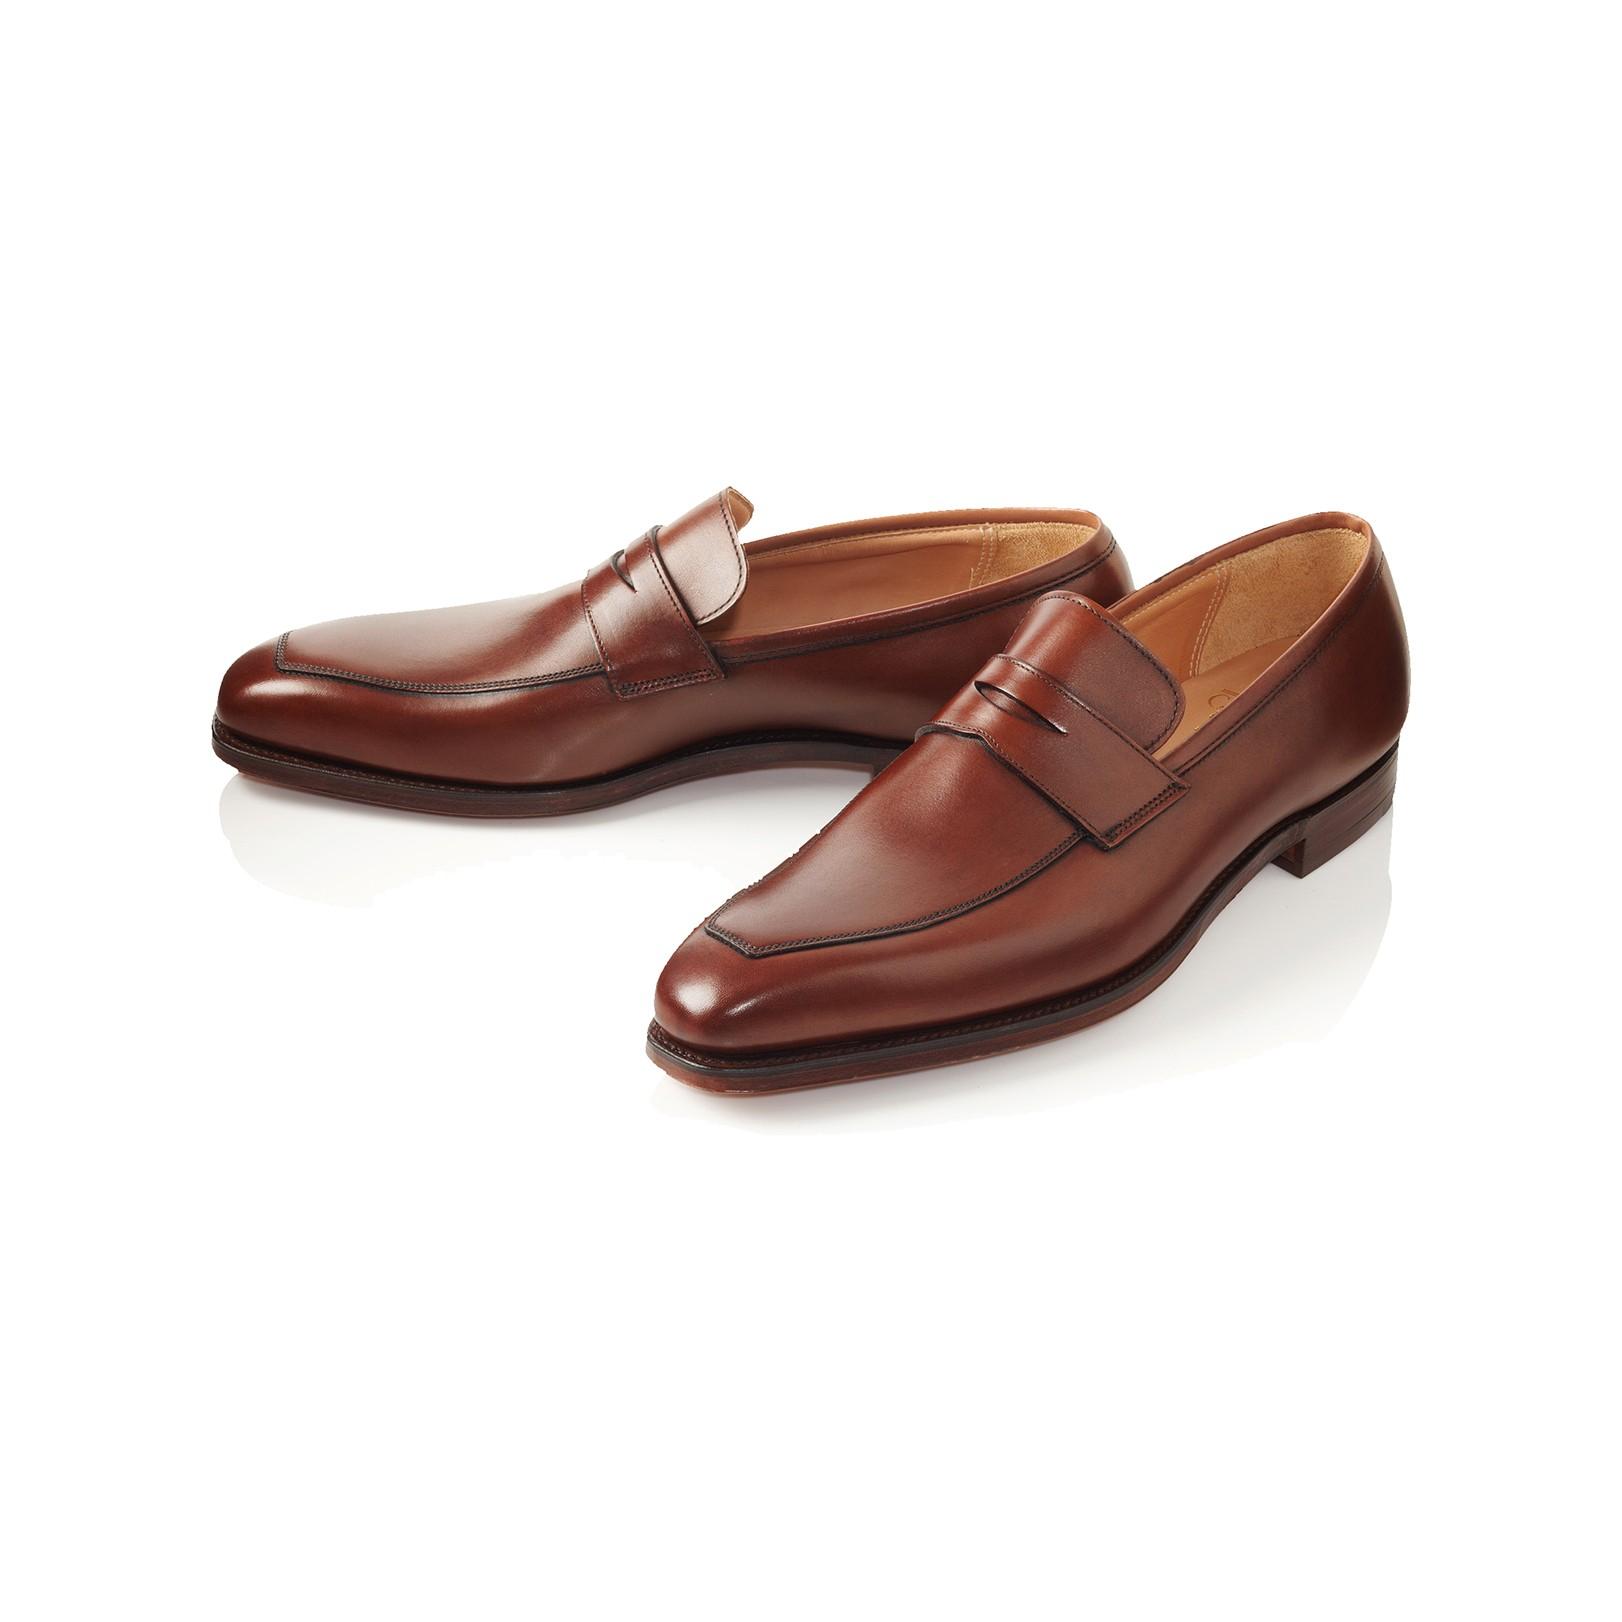 John Lobb Shoes >> Lyst - Crockett And Jones Merton Apron Loafer in Brown for Men